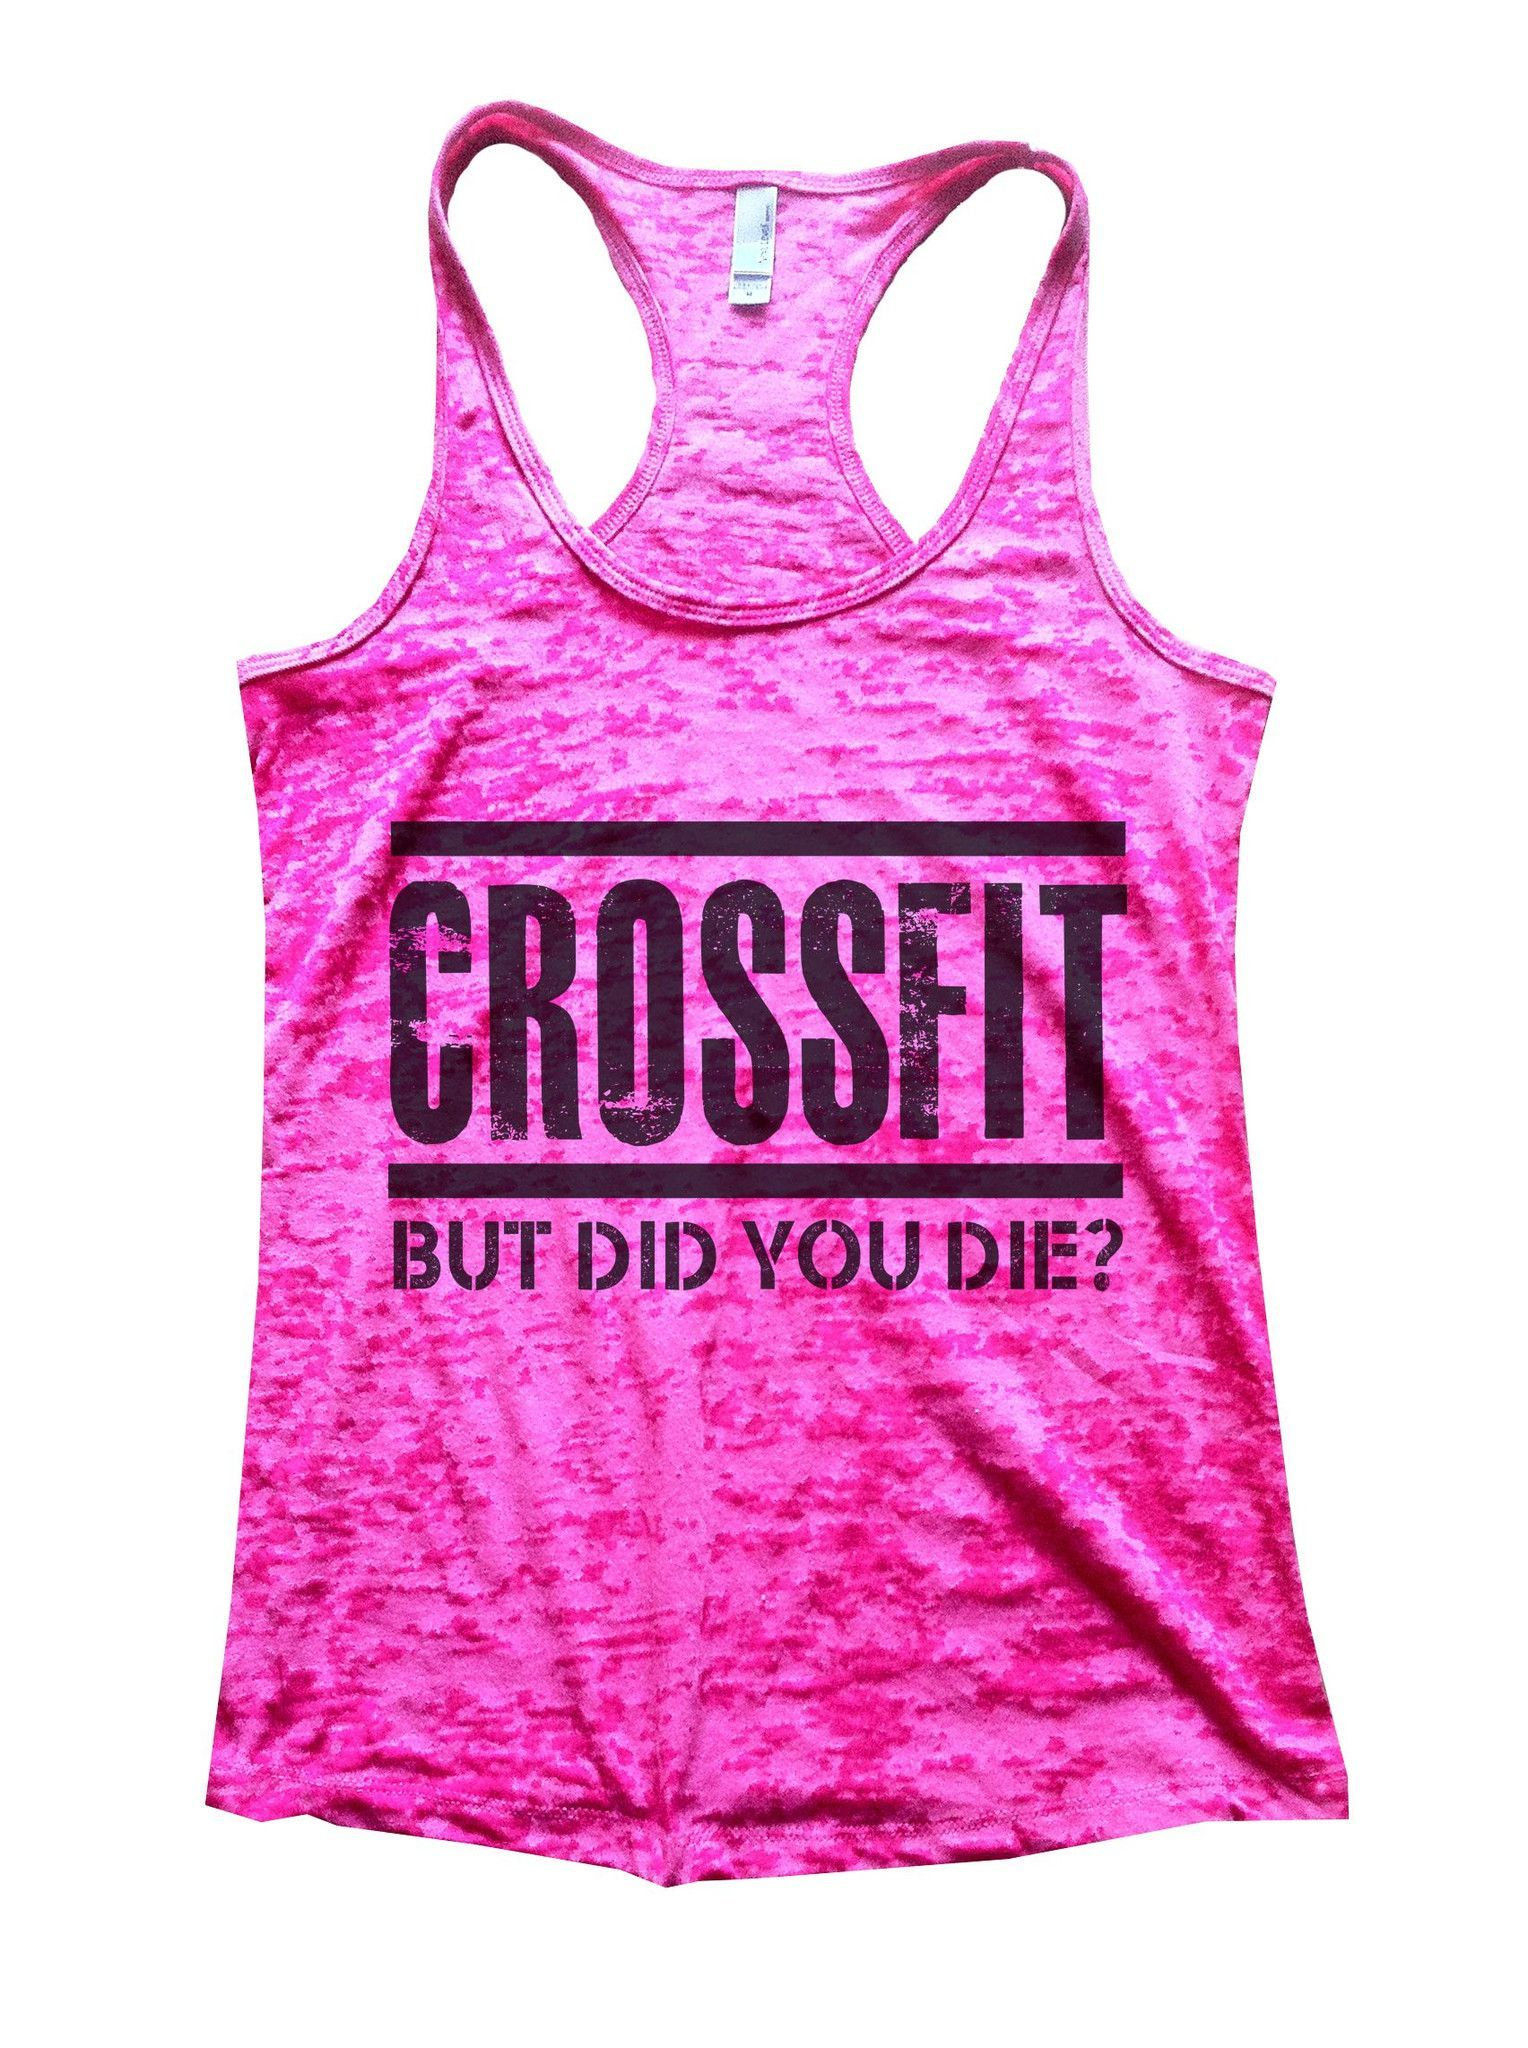 Crossfit But Did You Die Burnout Tank Top By Funny Threadz -2785